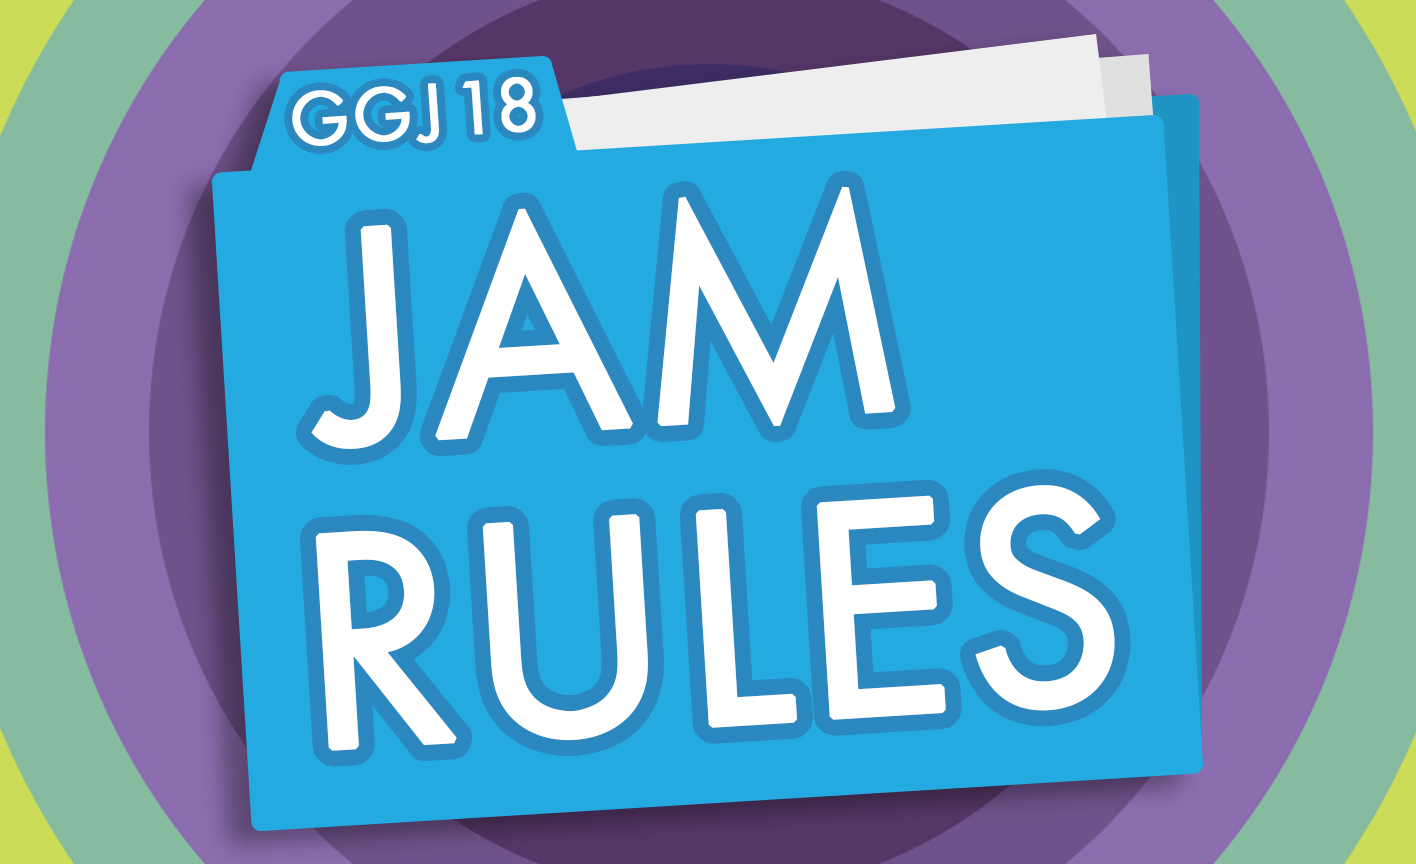 Global Game Jam 2018 Jam Rules